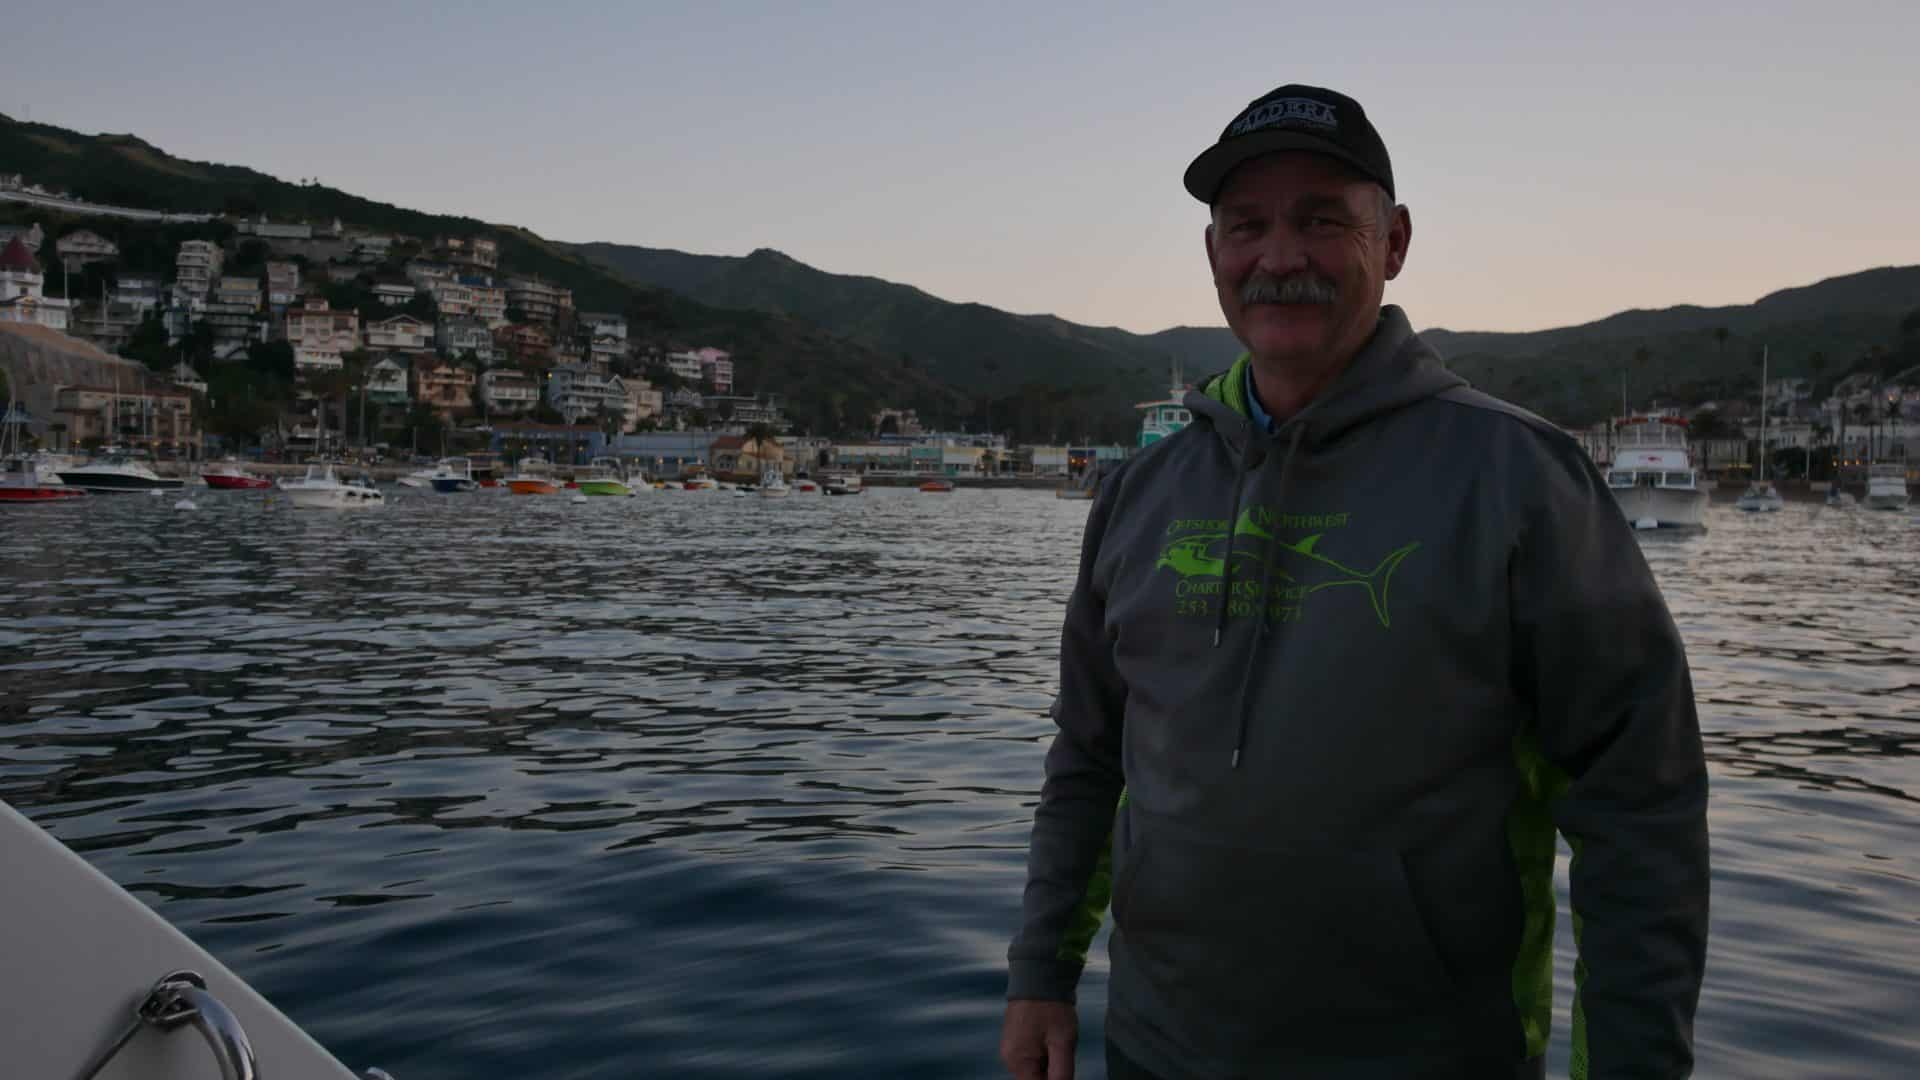 Tim at the end of the boat at Avalon, Catalina Islands